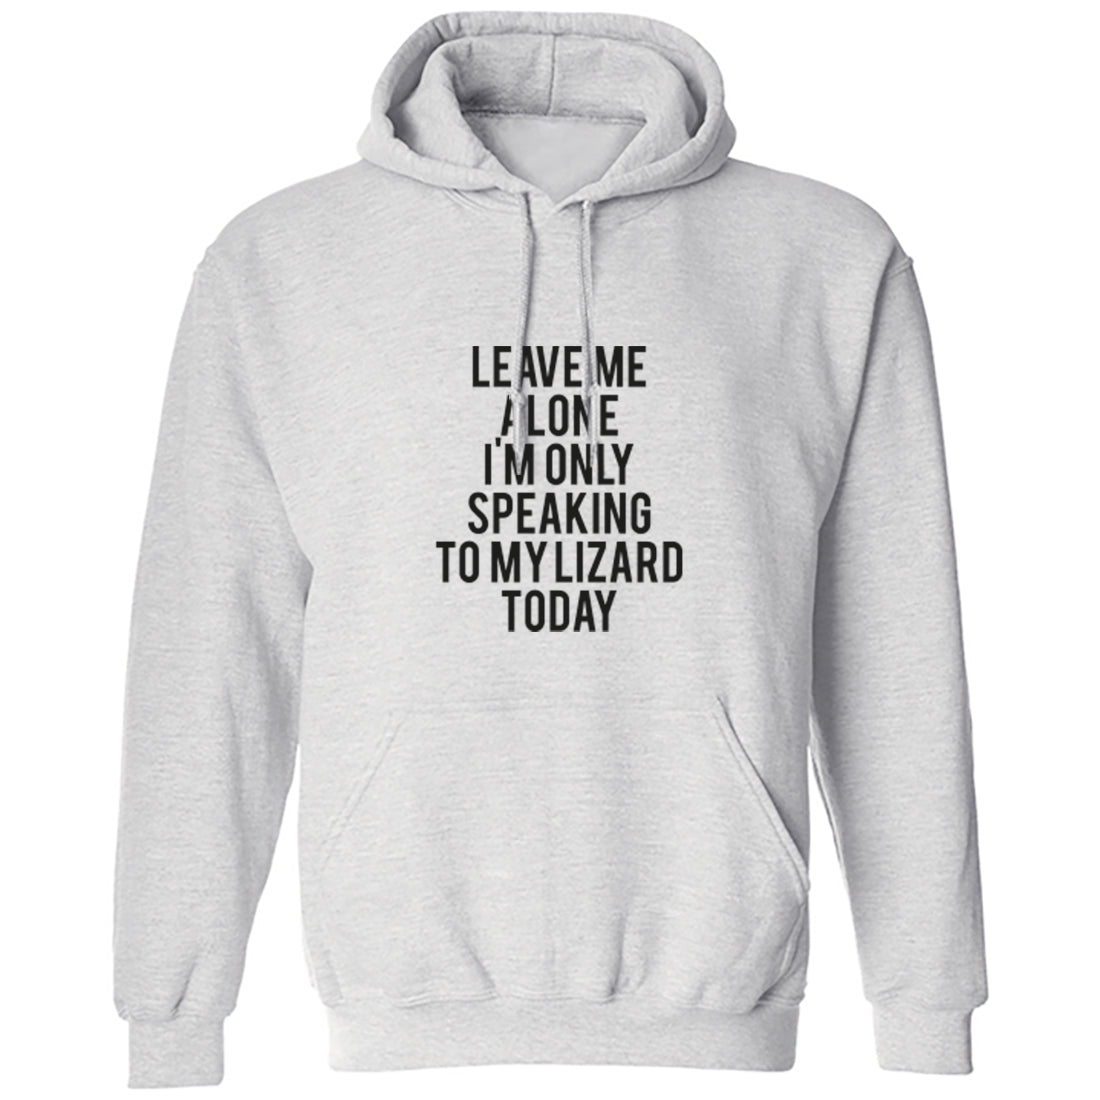 Leave Me Alone I'm Only Speaking To My Lizard Today Unisex Hoodie K0960 - Illustrated Identity Ltd.